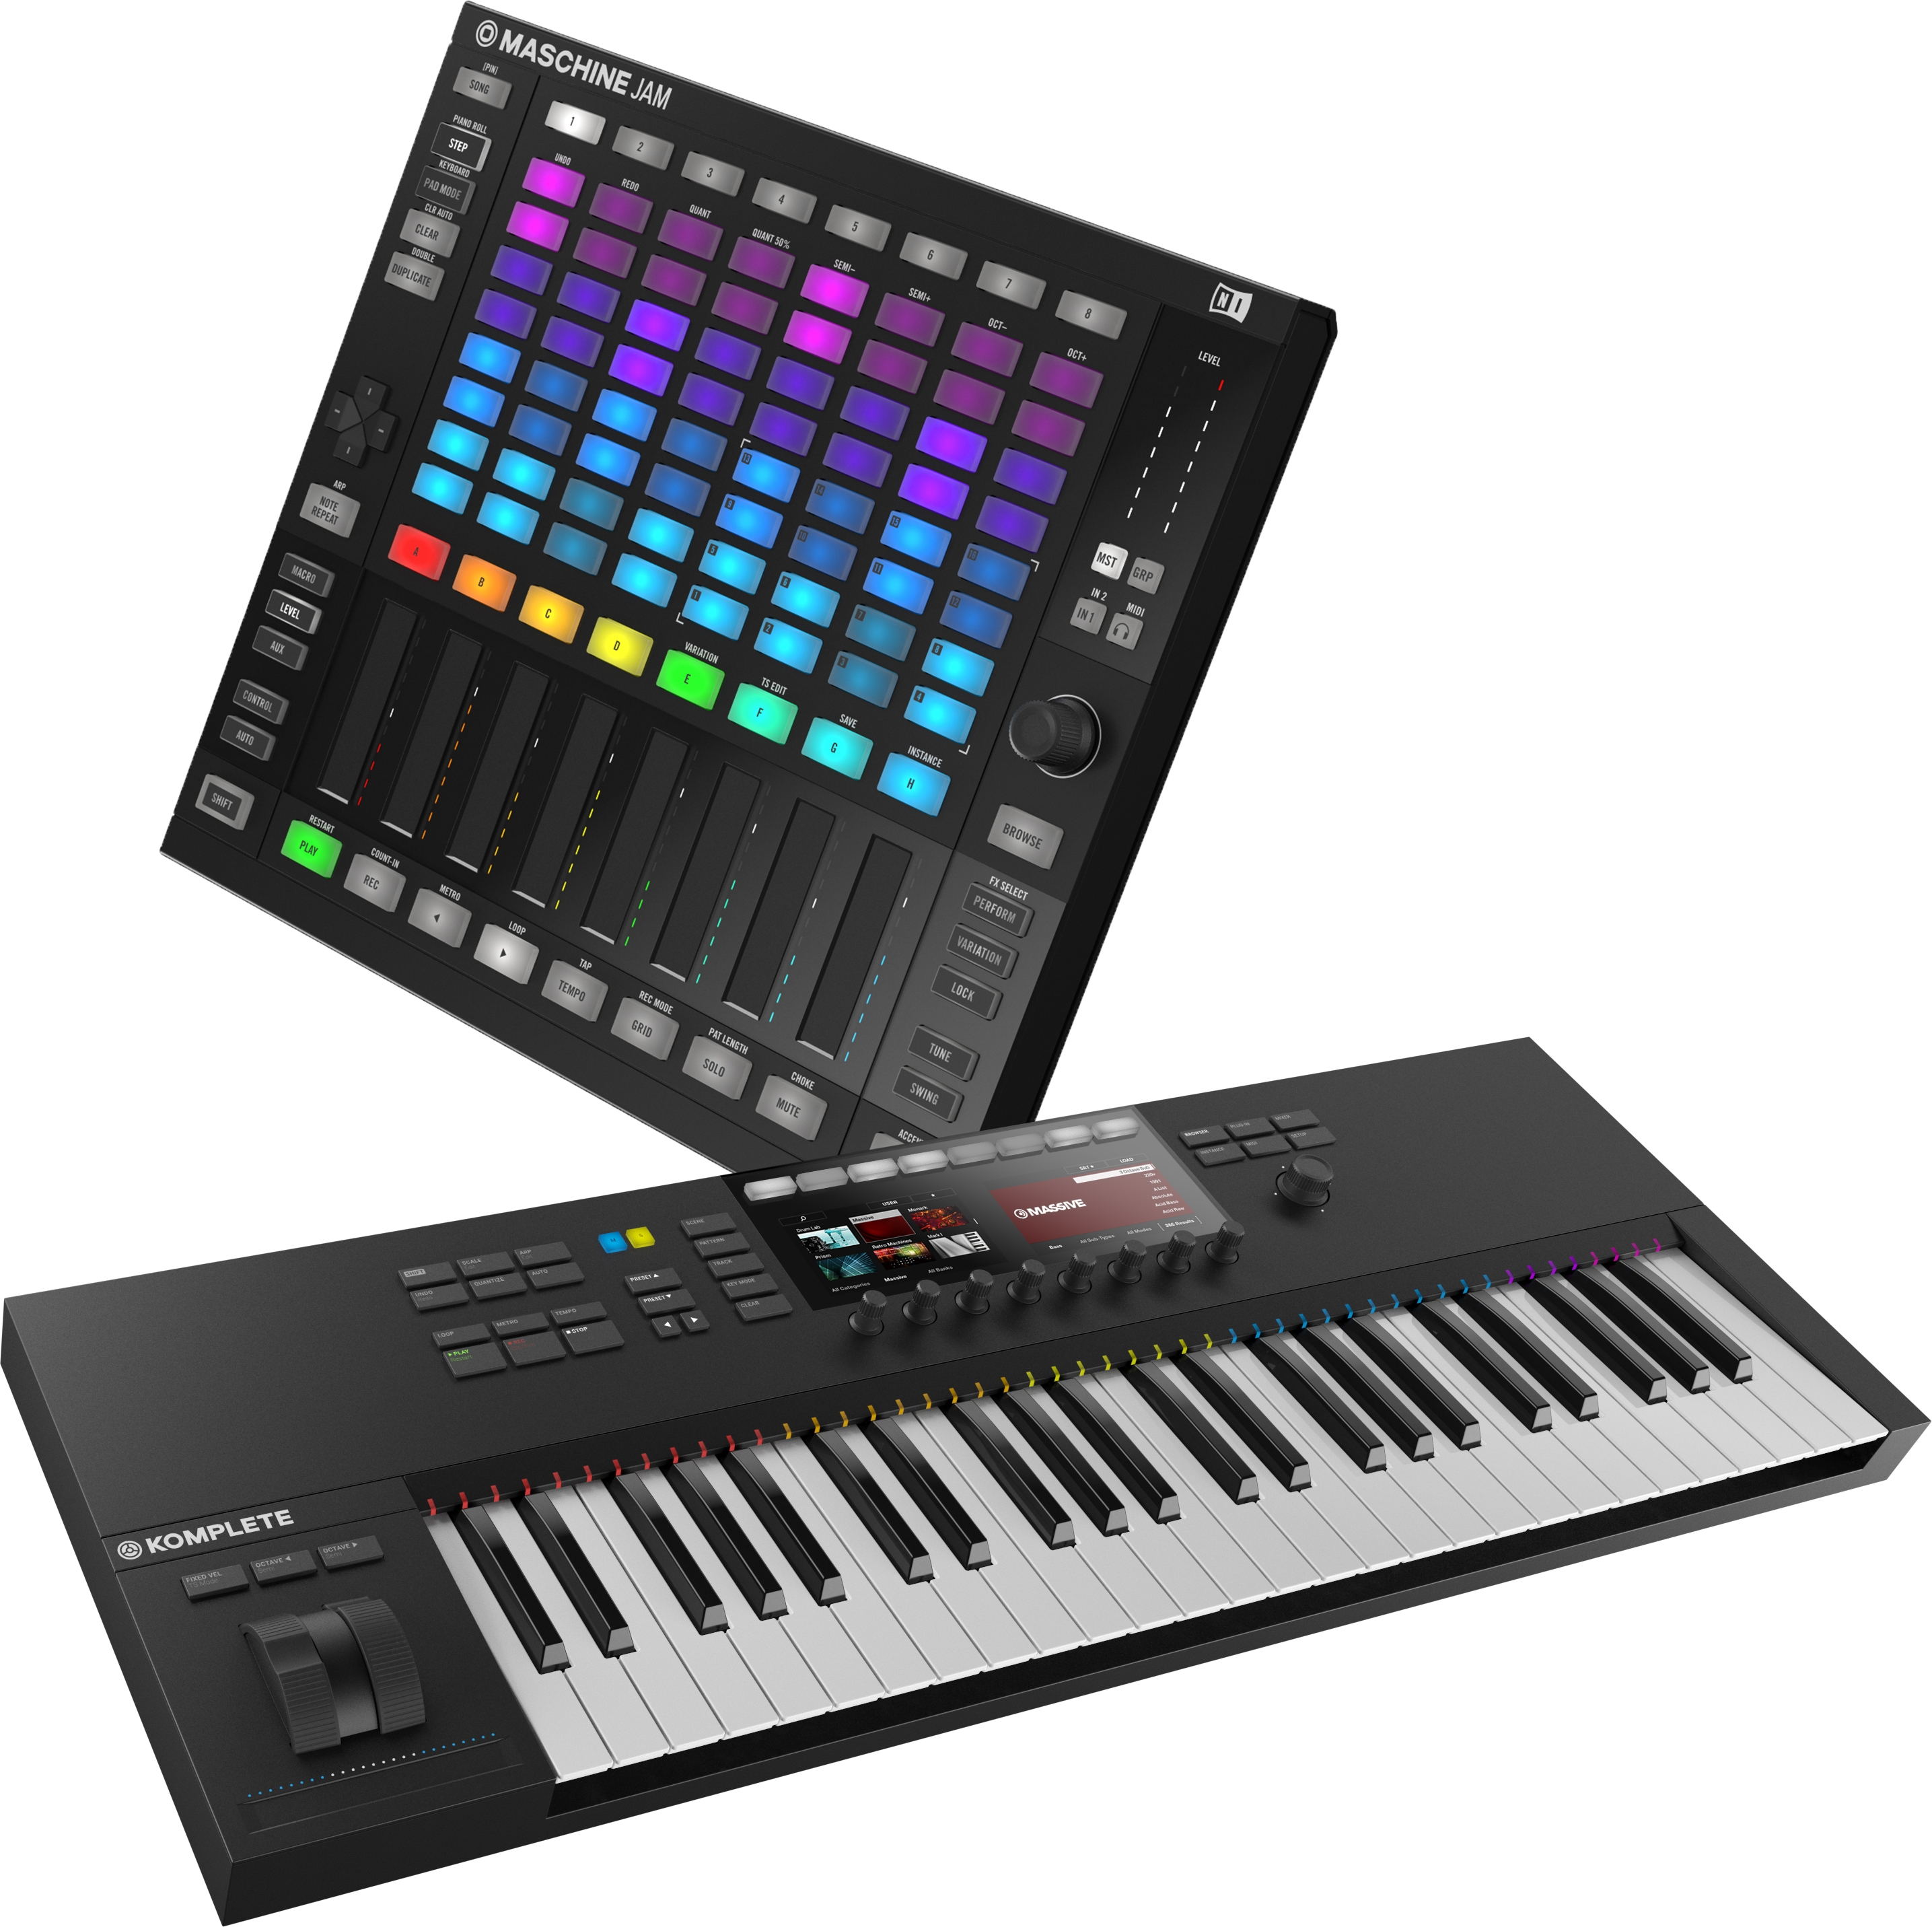 ni komplete kontrol s49 mk2 maschine jam bop dj. Black Bedroom Furniture Sets. Home Design Ideas